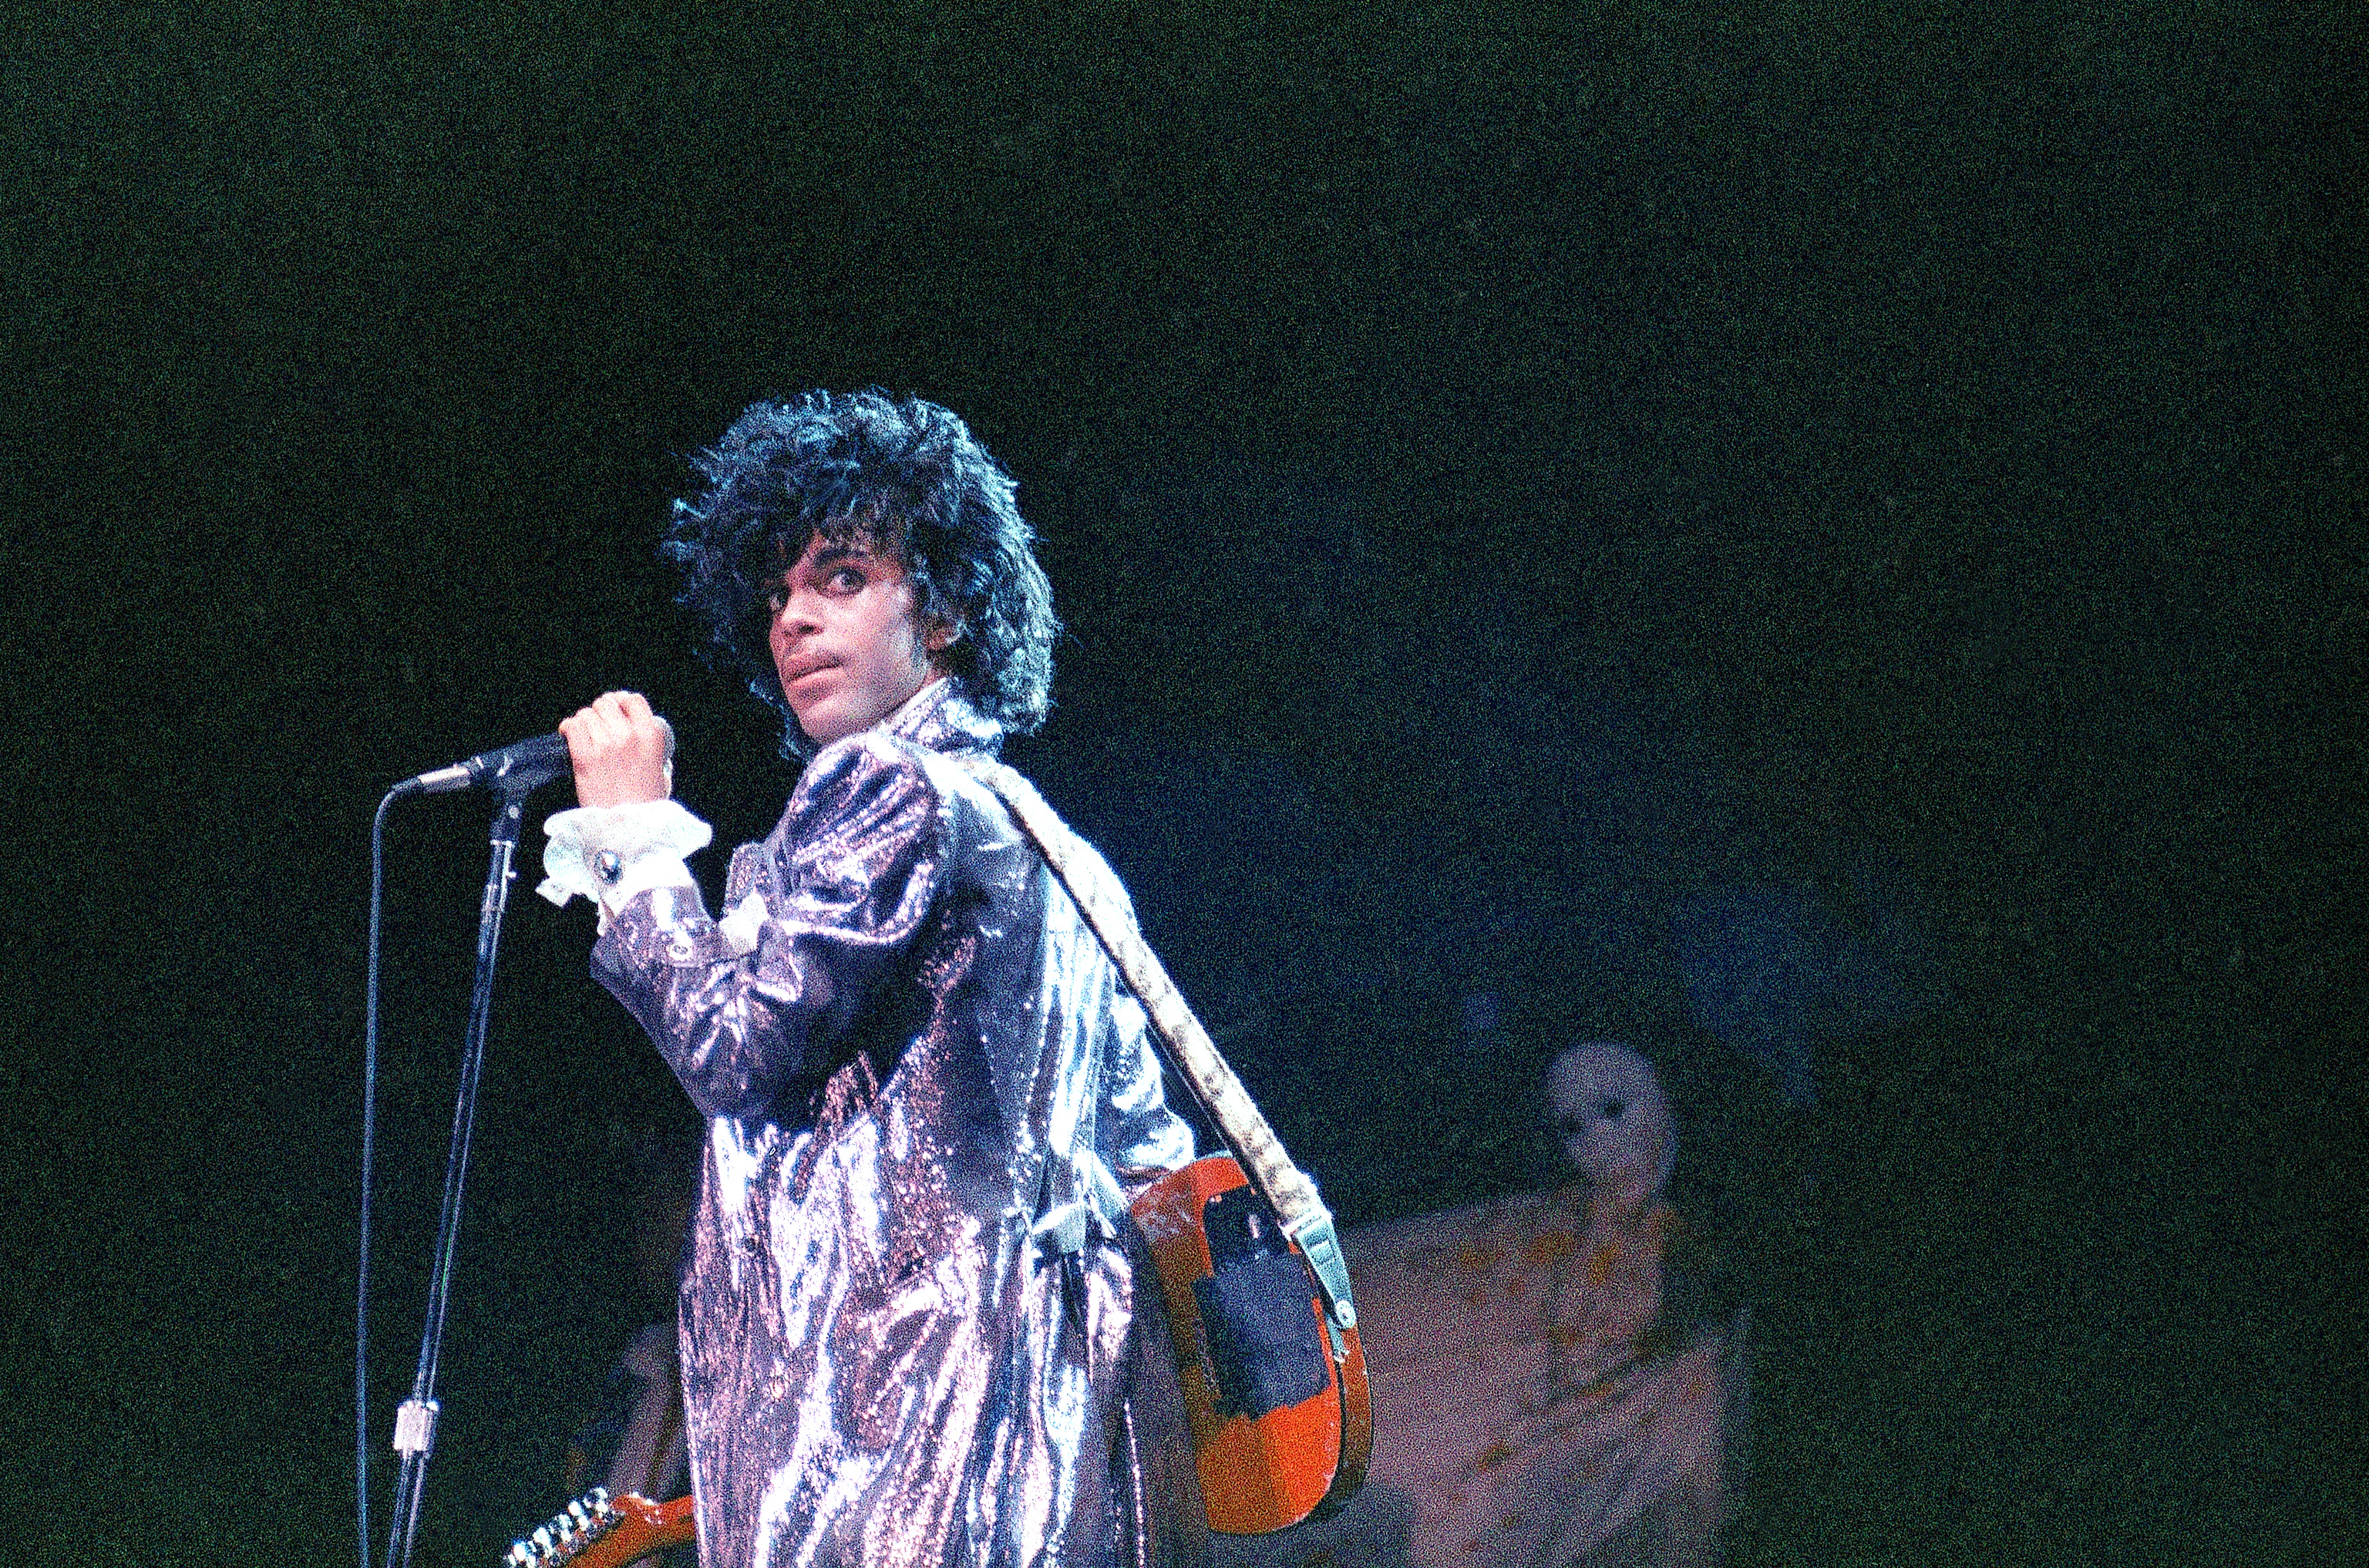 'Hunting for Prince's Vault' Creator on the Purple Music Yet to Come